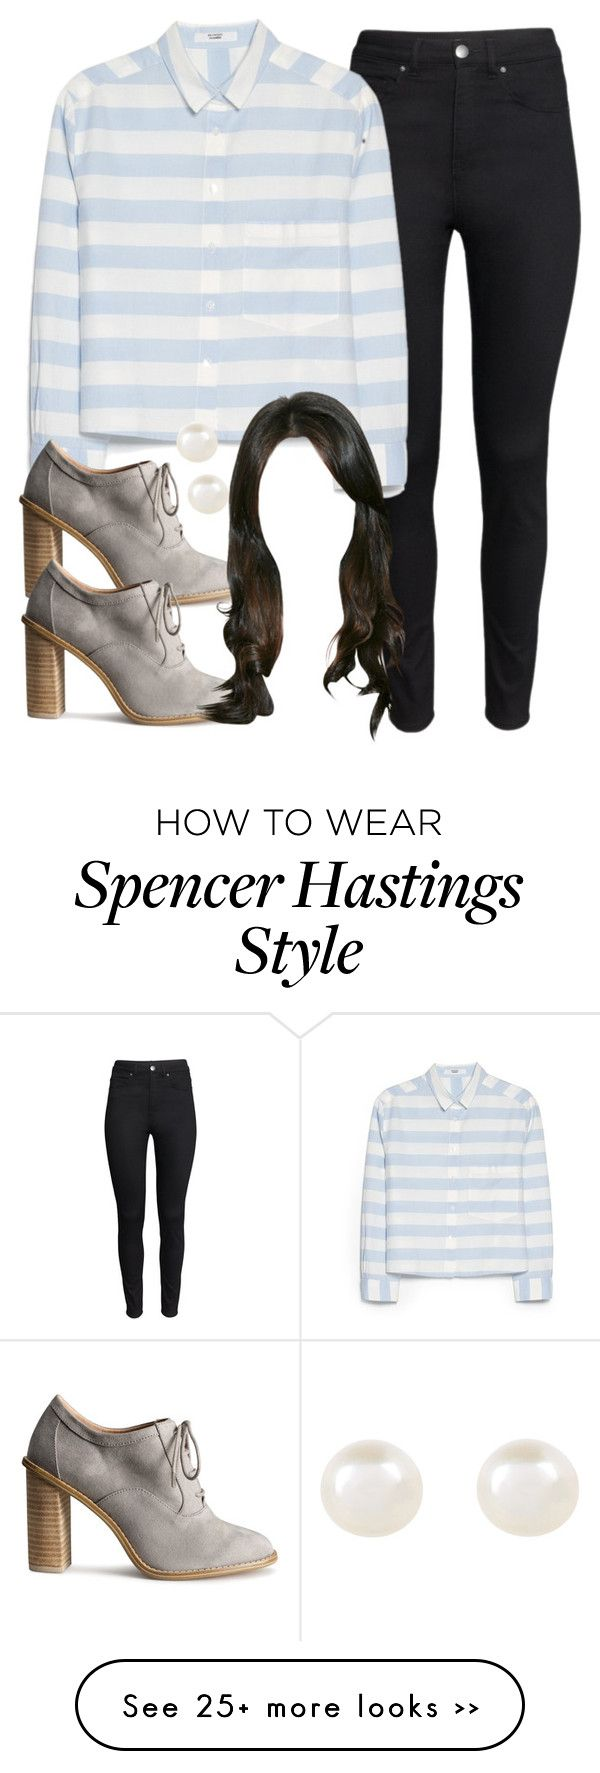 """""""Spencer Hastings inspired outfit with requested shirt"""" by liarsstyle on Polyvore"""